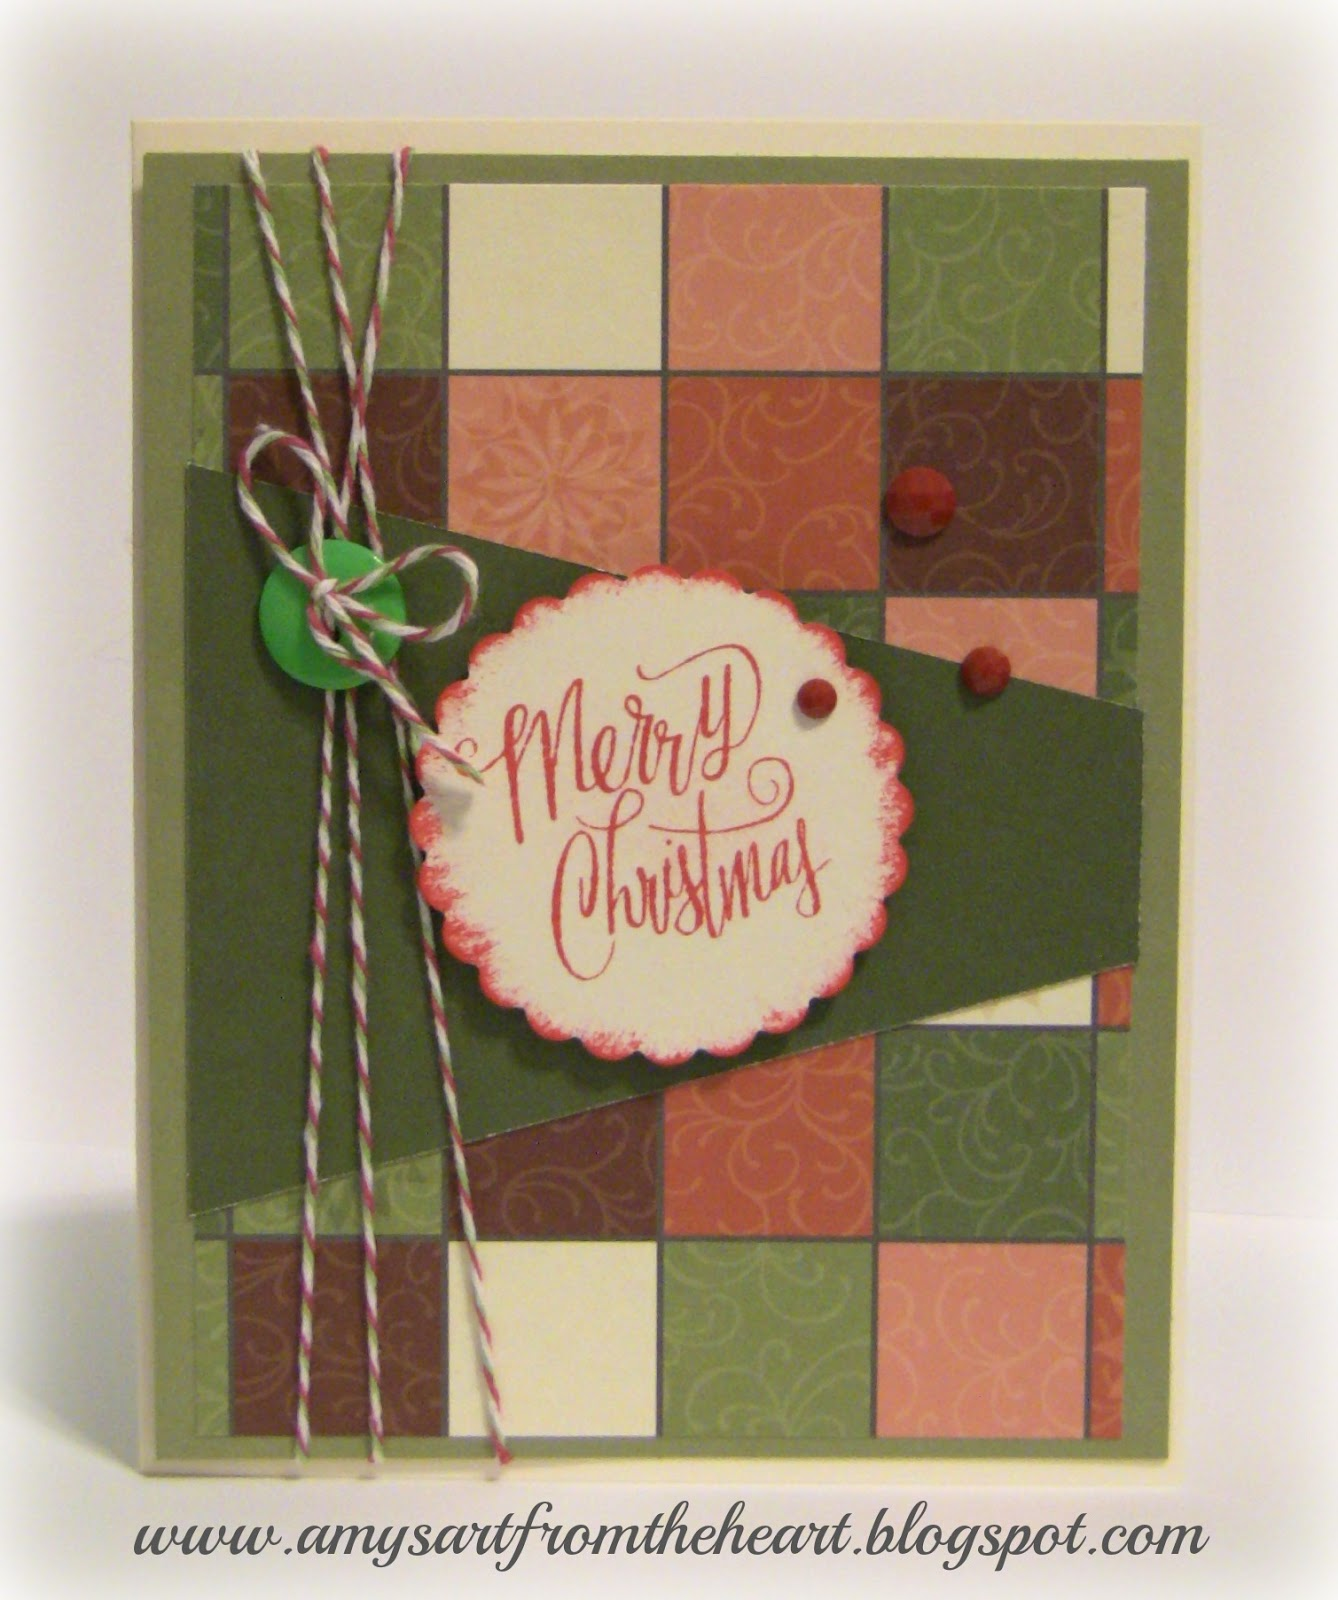 Amys Art from the Heart: Christmas Card Exchange 2015